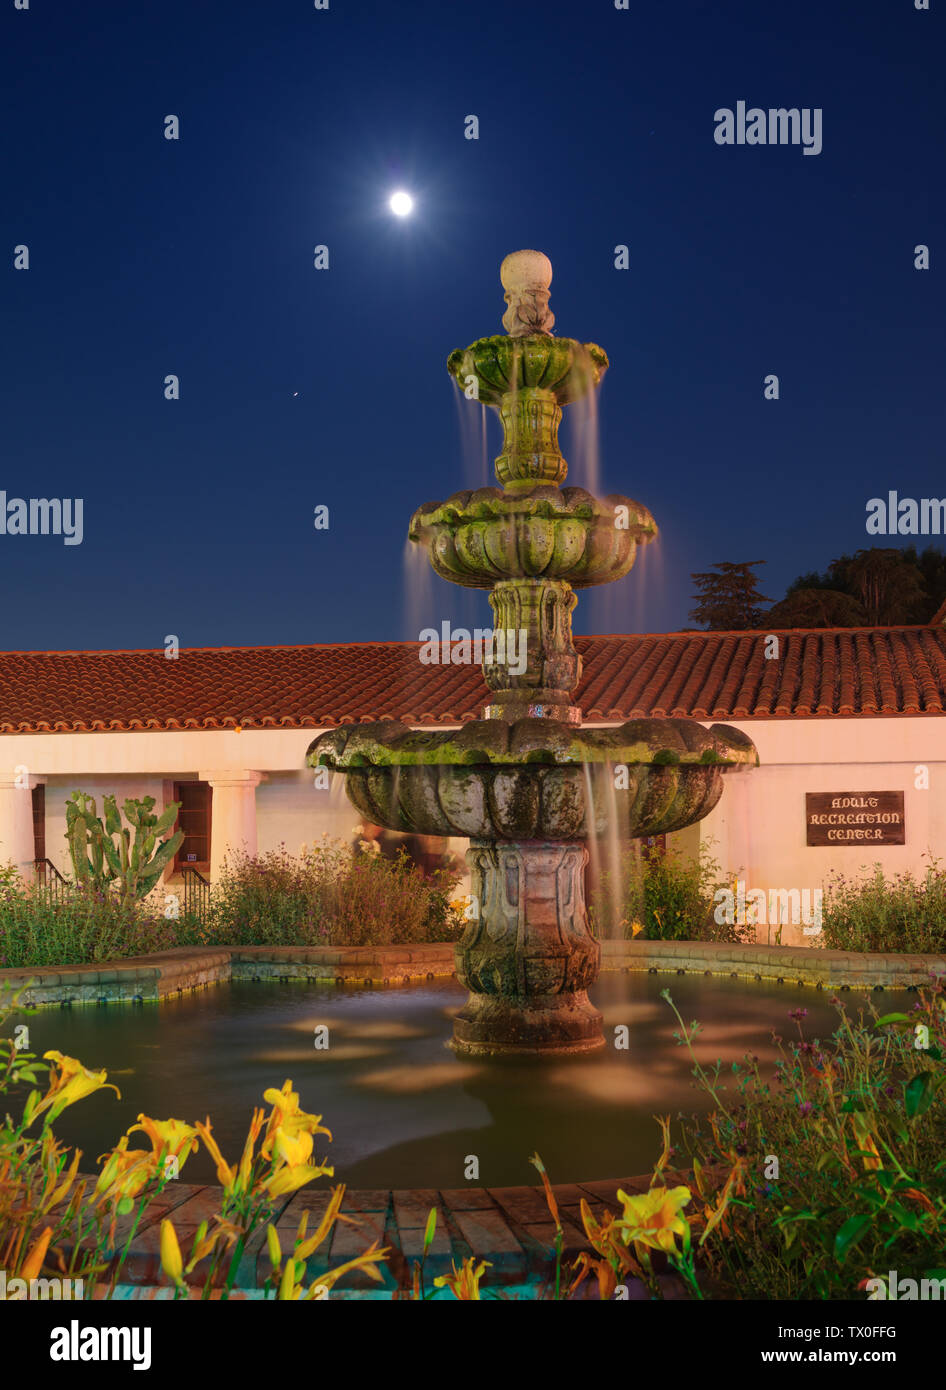 Image showing the rising full moon overt the Constitution Fountain at San Gabriel Mission Playhouse in California. - Stock Image